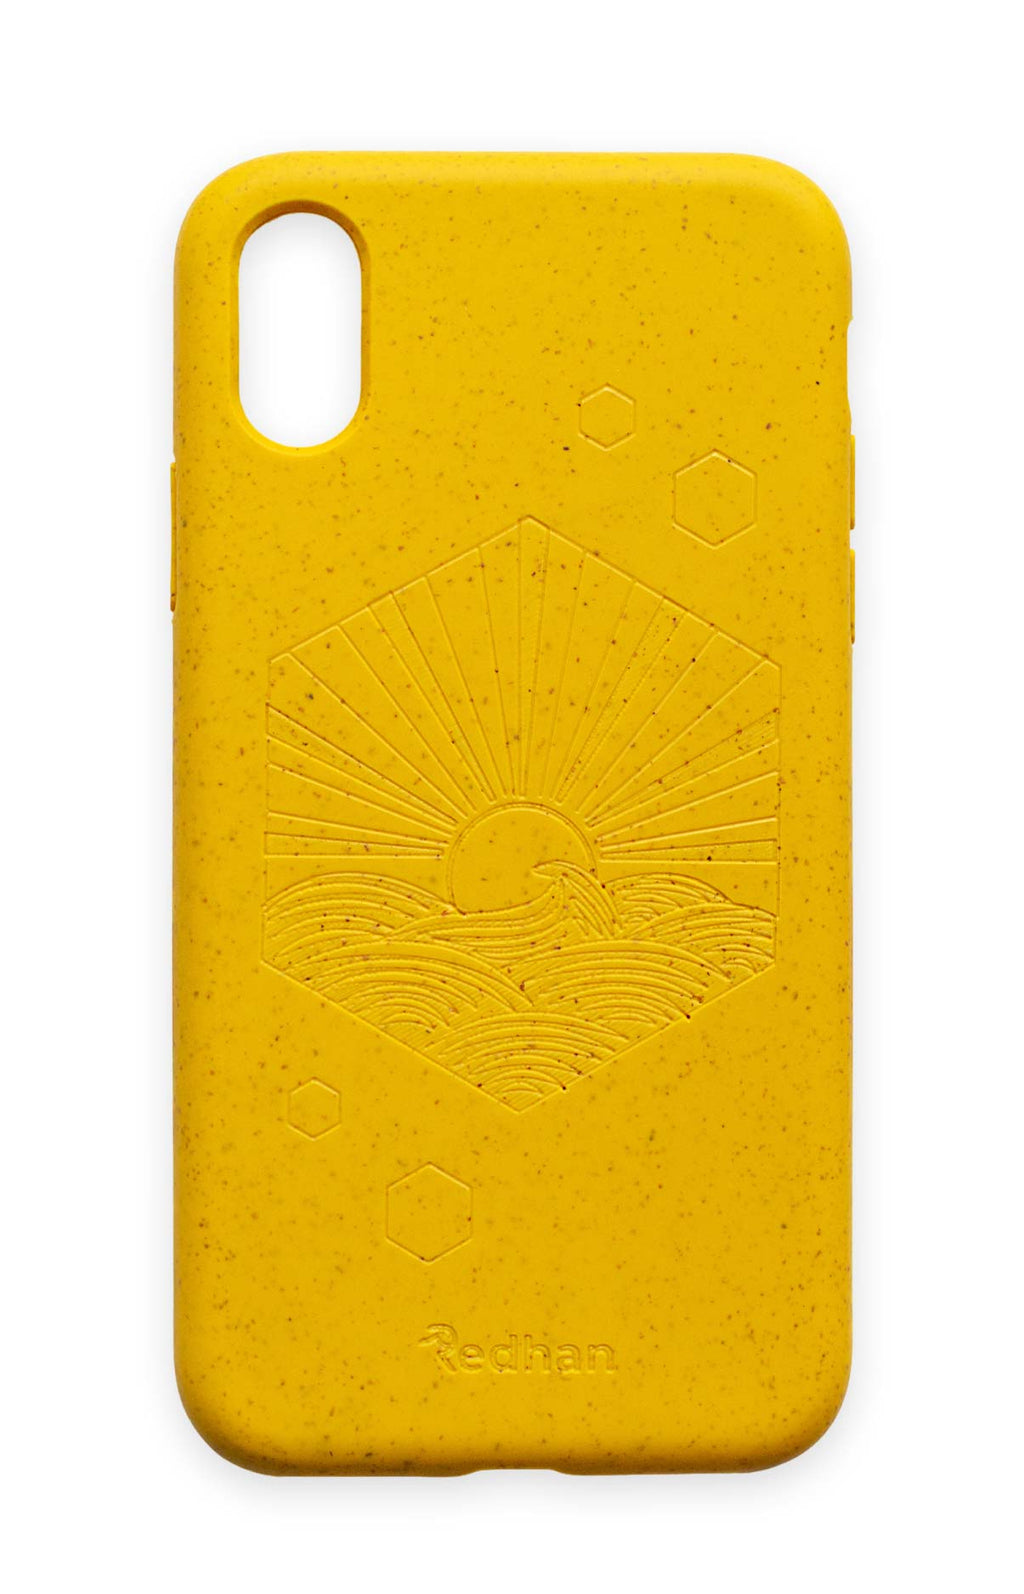 Eco-Friendly Phone Case Yellow, iPhone X / XS Phone case in Yellow, Biodegradable